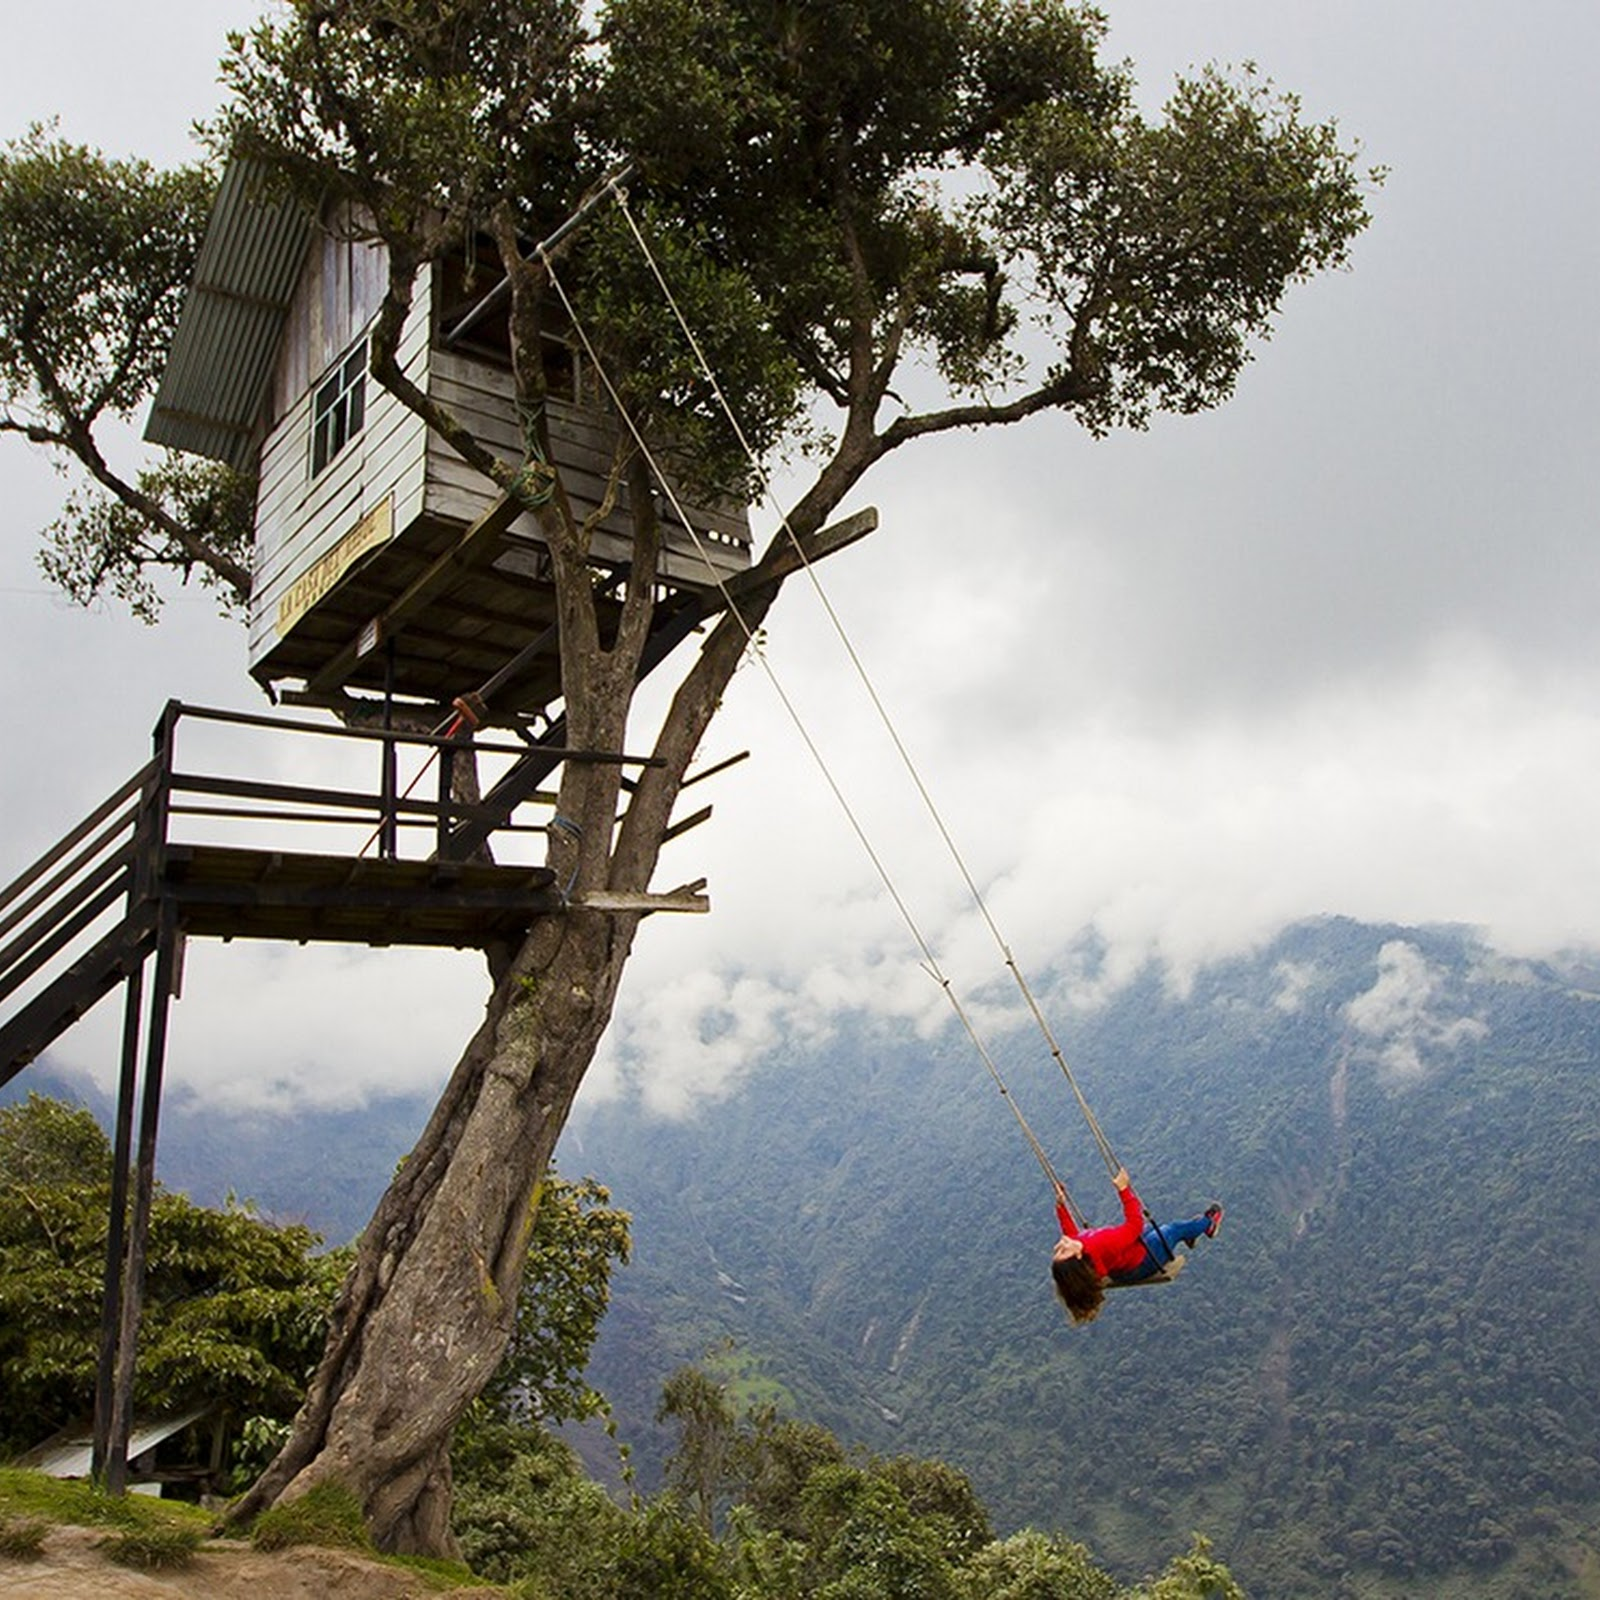 The Swing of Casa Del Arbol, Ecuador